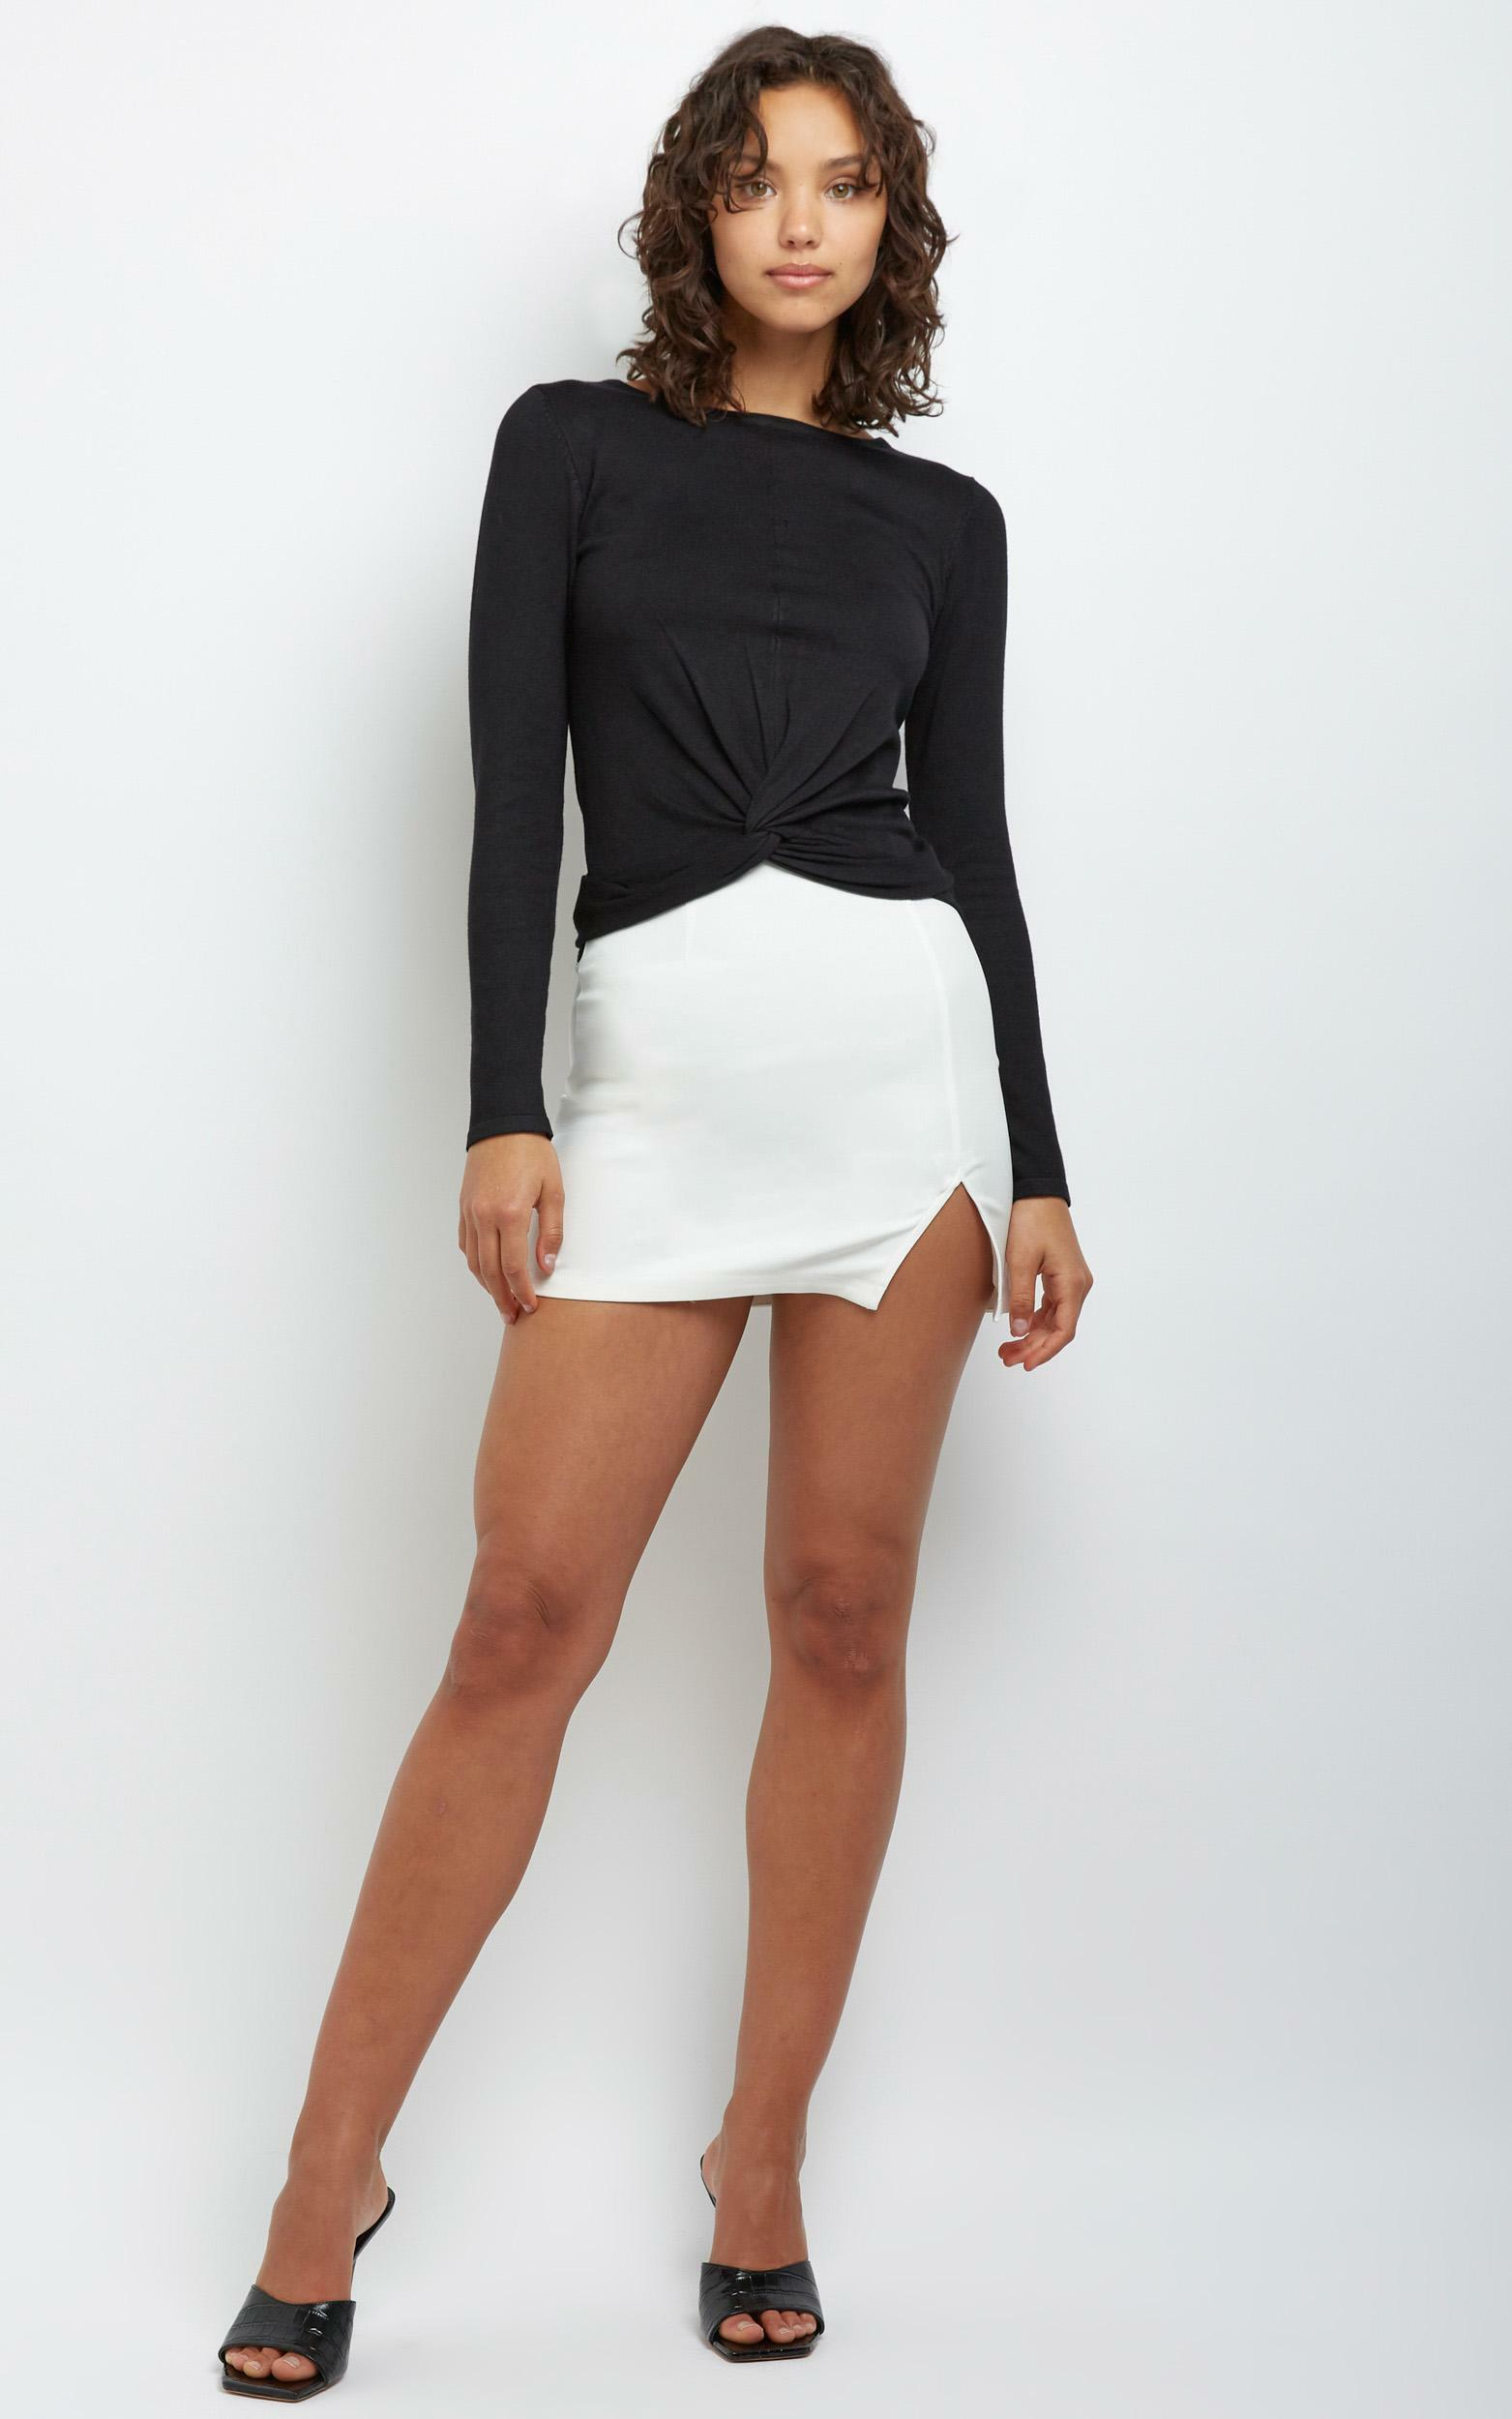 Cydney Skirt in White - 12 (L), White, hi-res image number null